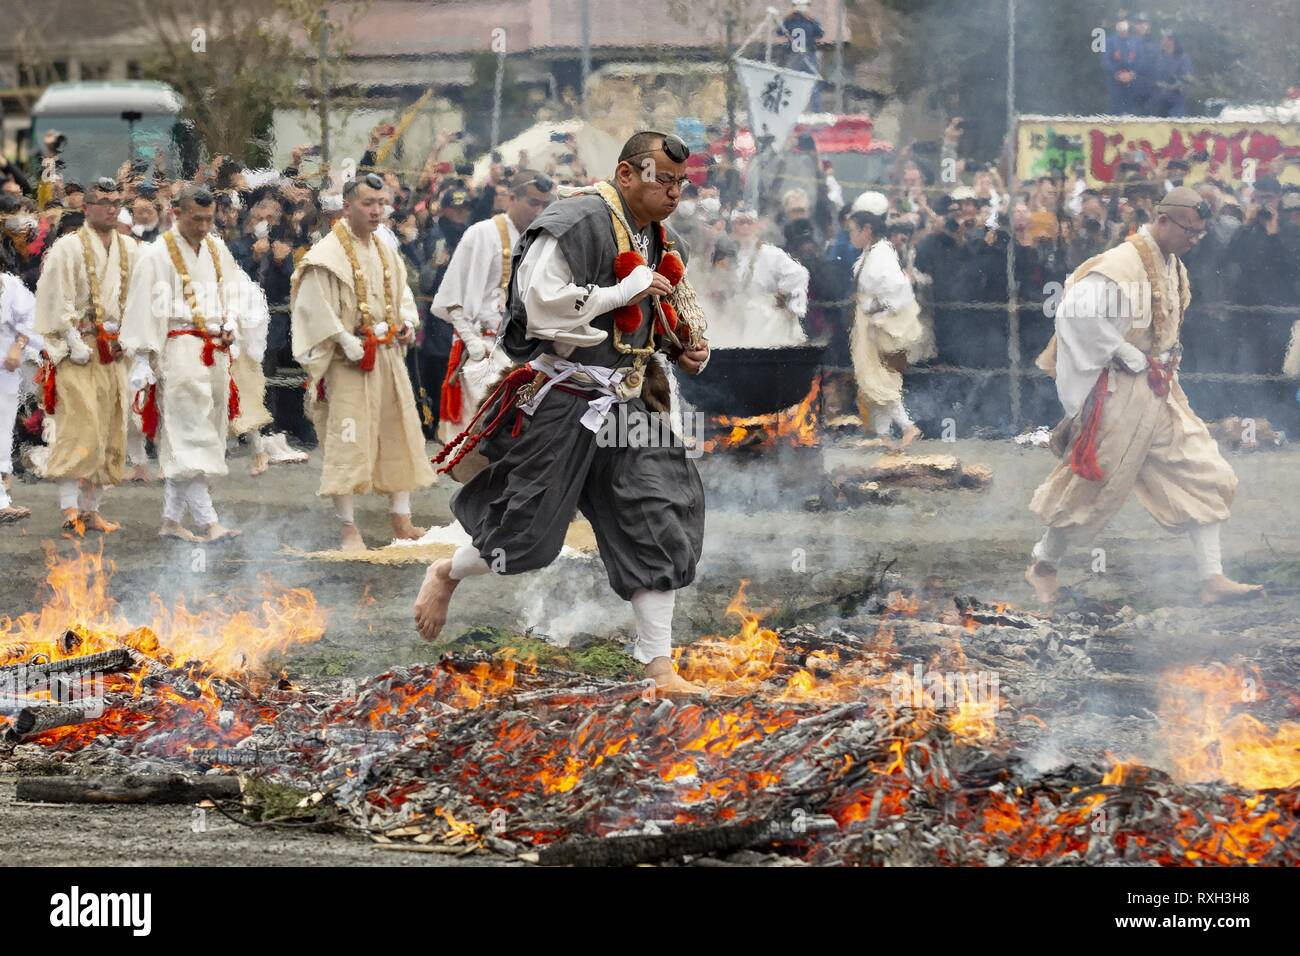 Tokyo, Japan. 10th Mar, 2019. Buddhist practitioners walk on the fire during the Hiwatari or fire-walking ceremony at Yakuo-in temple. Buddhist devotees walked over the fire with bare feet to pray for world peace and receive protection from misfortune and good health. Visitors can participate at the end of the ceremony to receive the benefits. The annual event is held on the second Sunday of March at the down skirt of Mt. Takao. Credit: Rodrigo Reyes Marin/ZUMA Wire/Alamy Live News - Stock Image